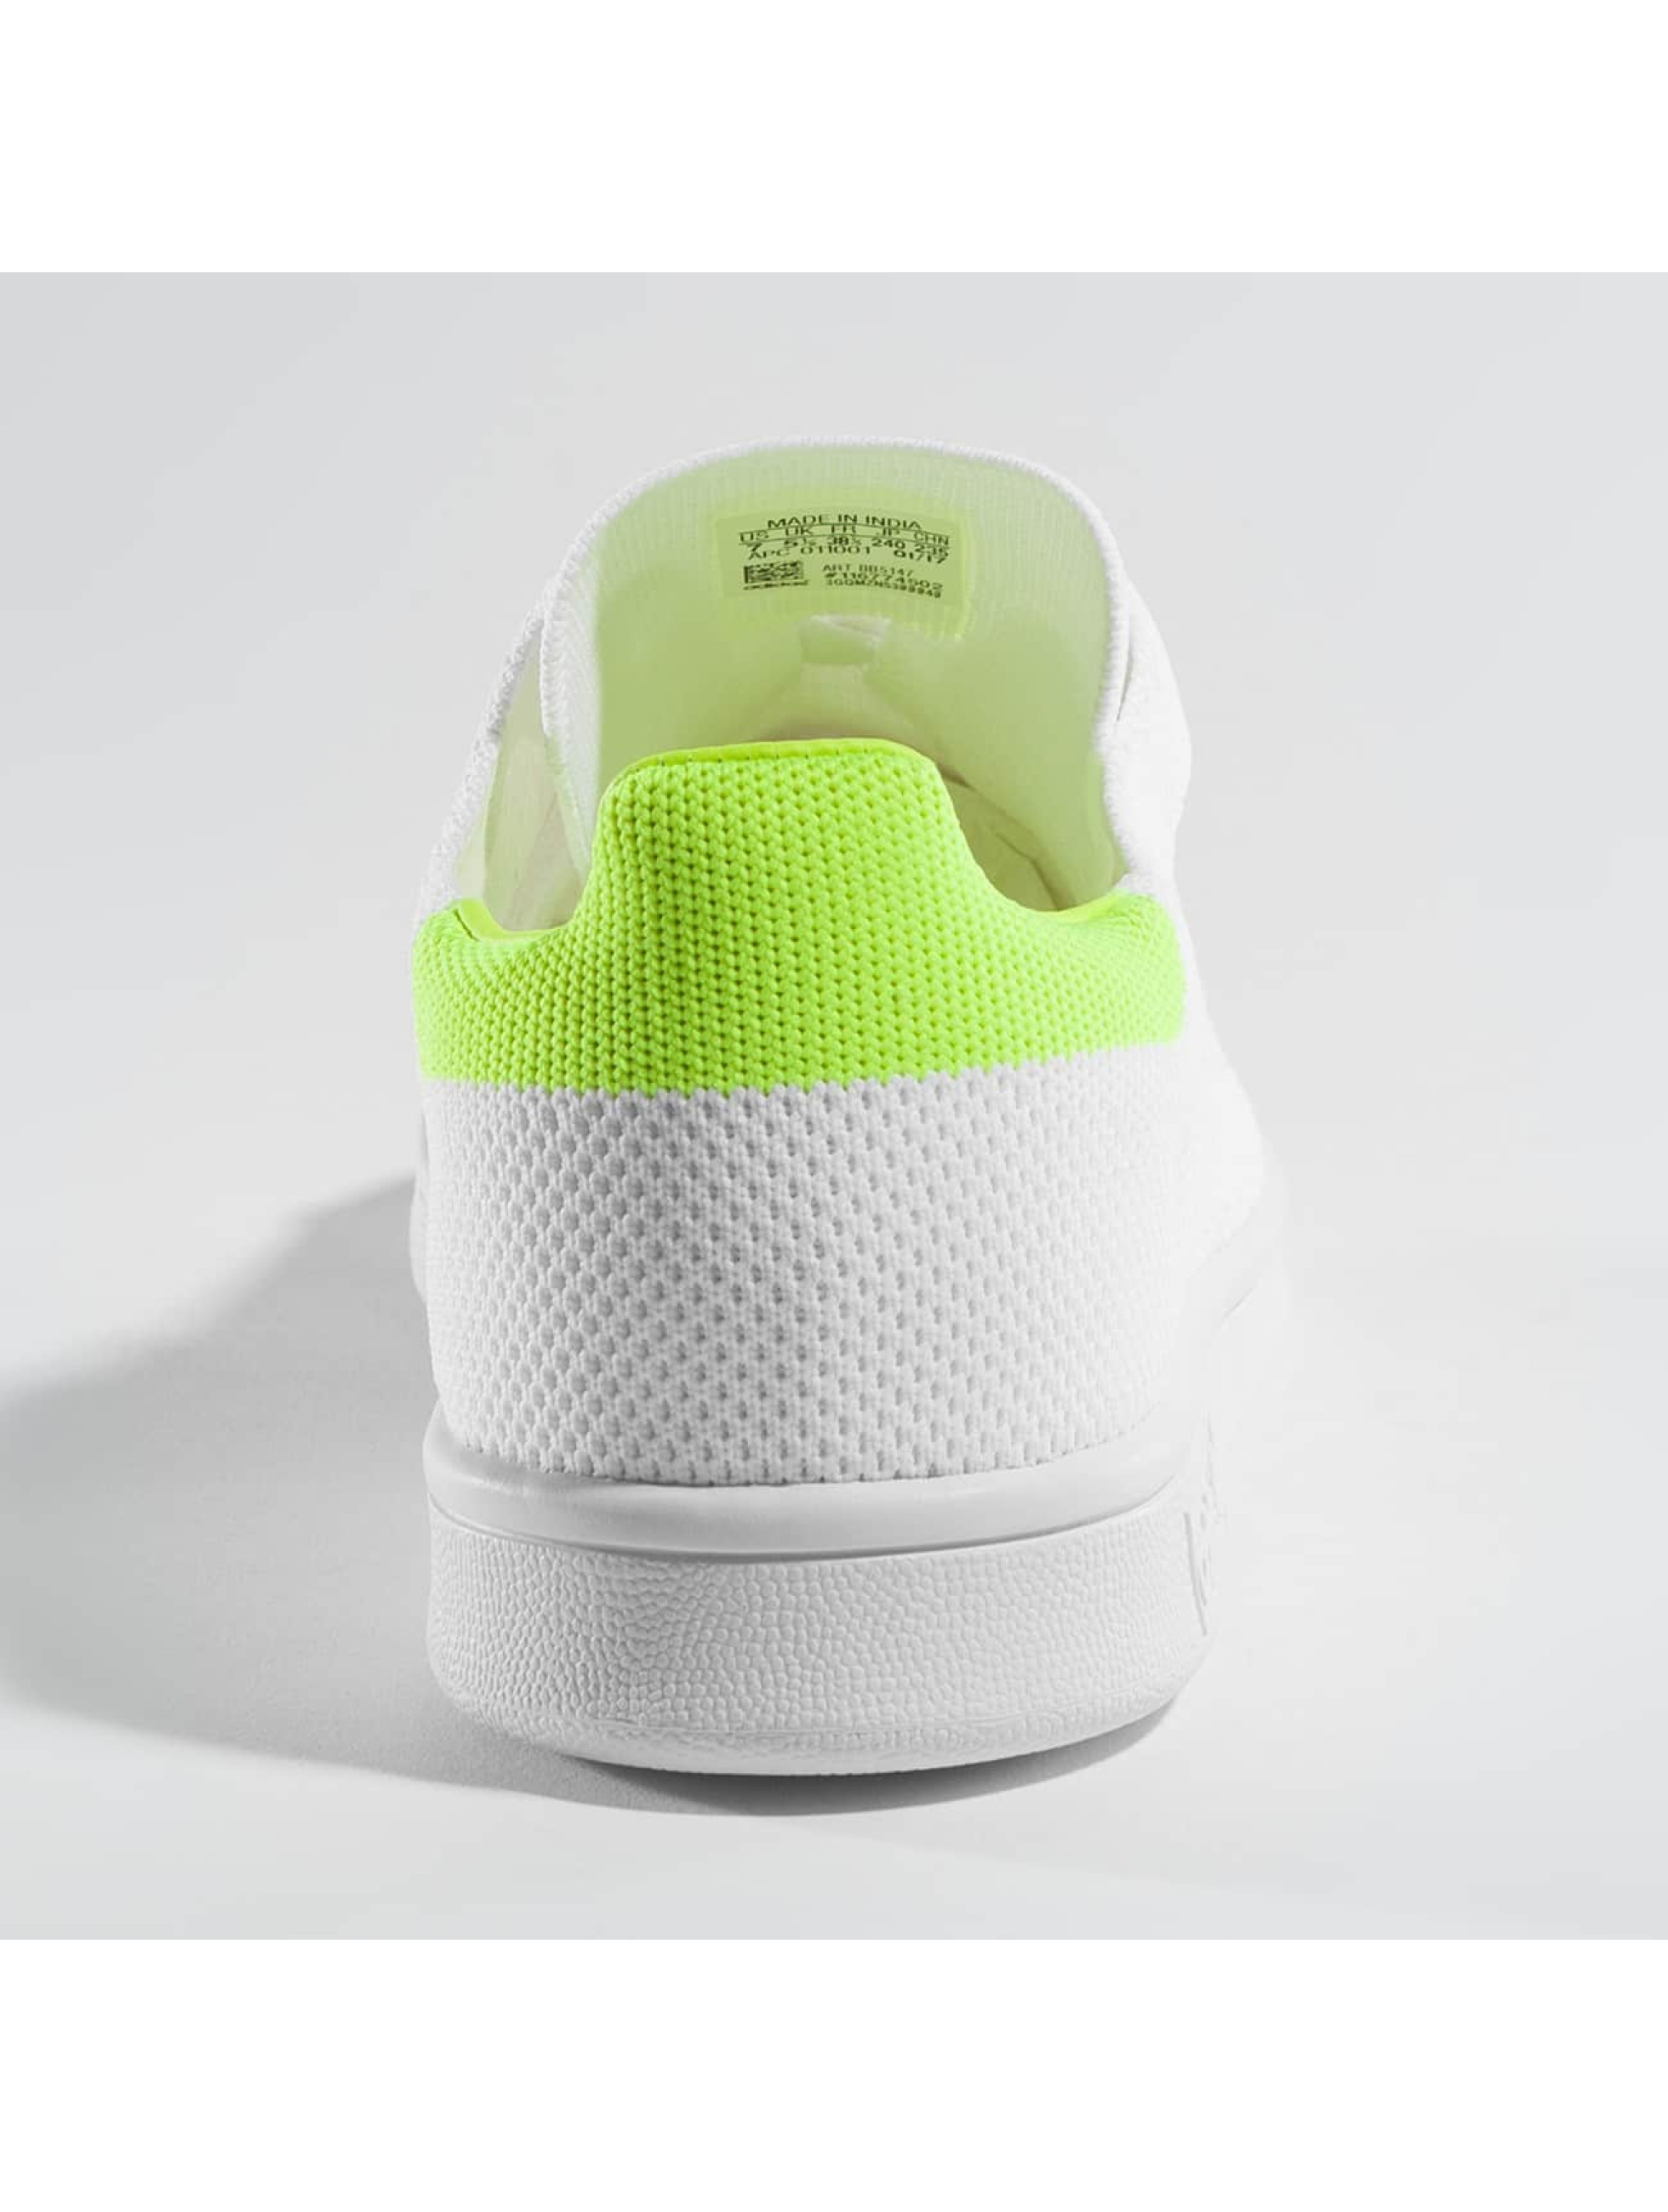 adidas Zapatillas de deporte Stan Smith PK blanco